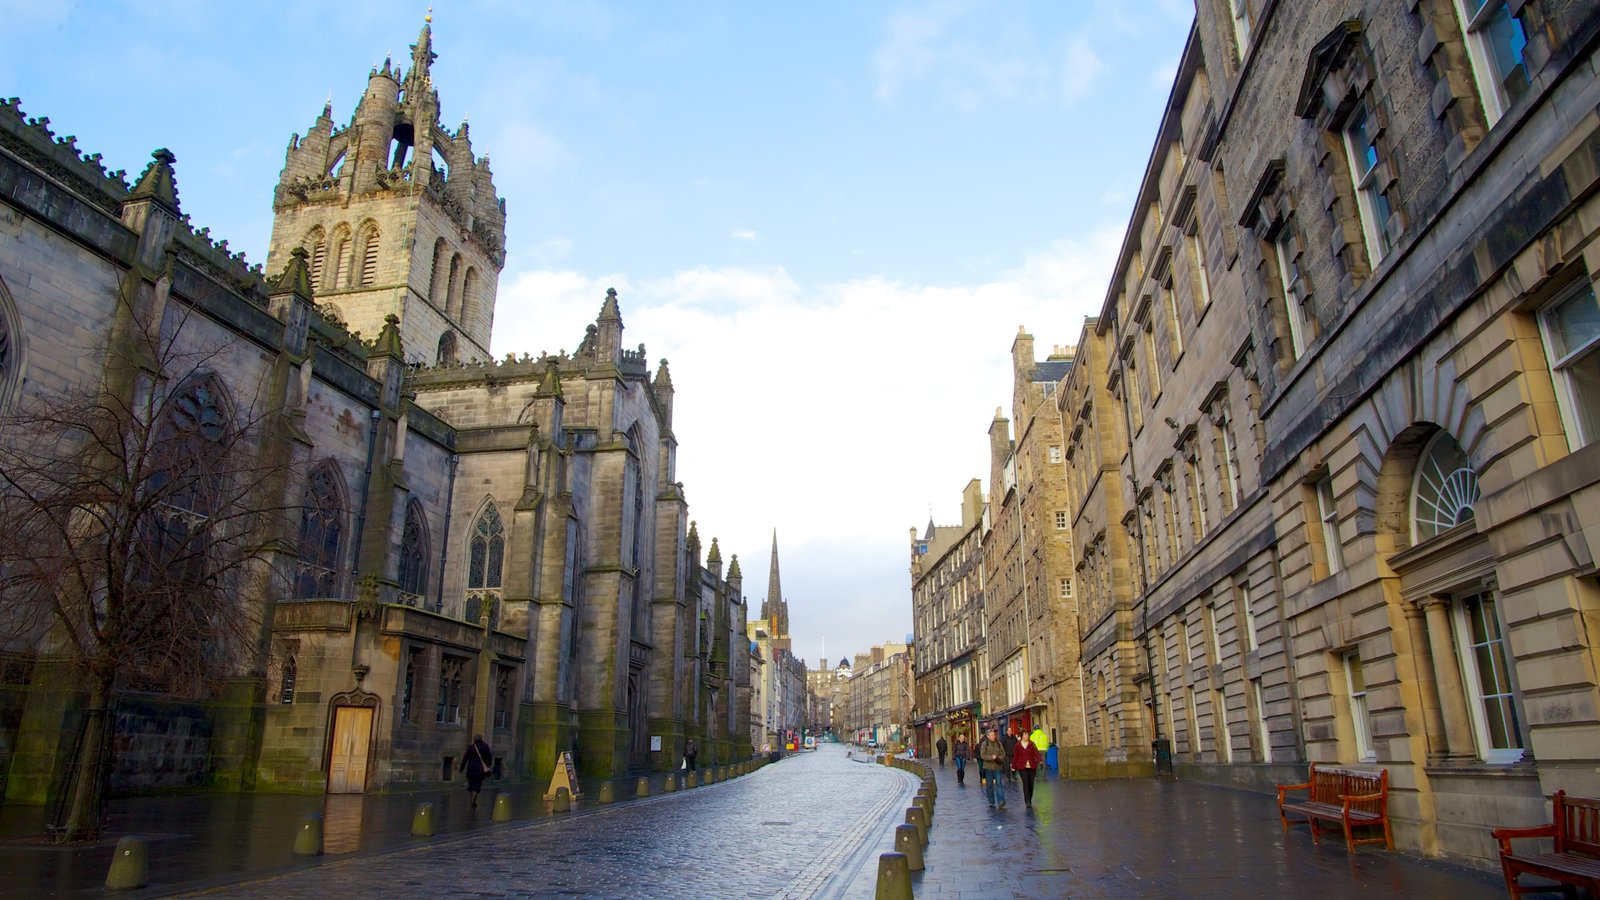 St. Giles\' Cathedral showing a church or cathedral, heritage architecture and a city